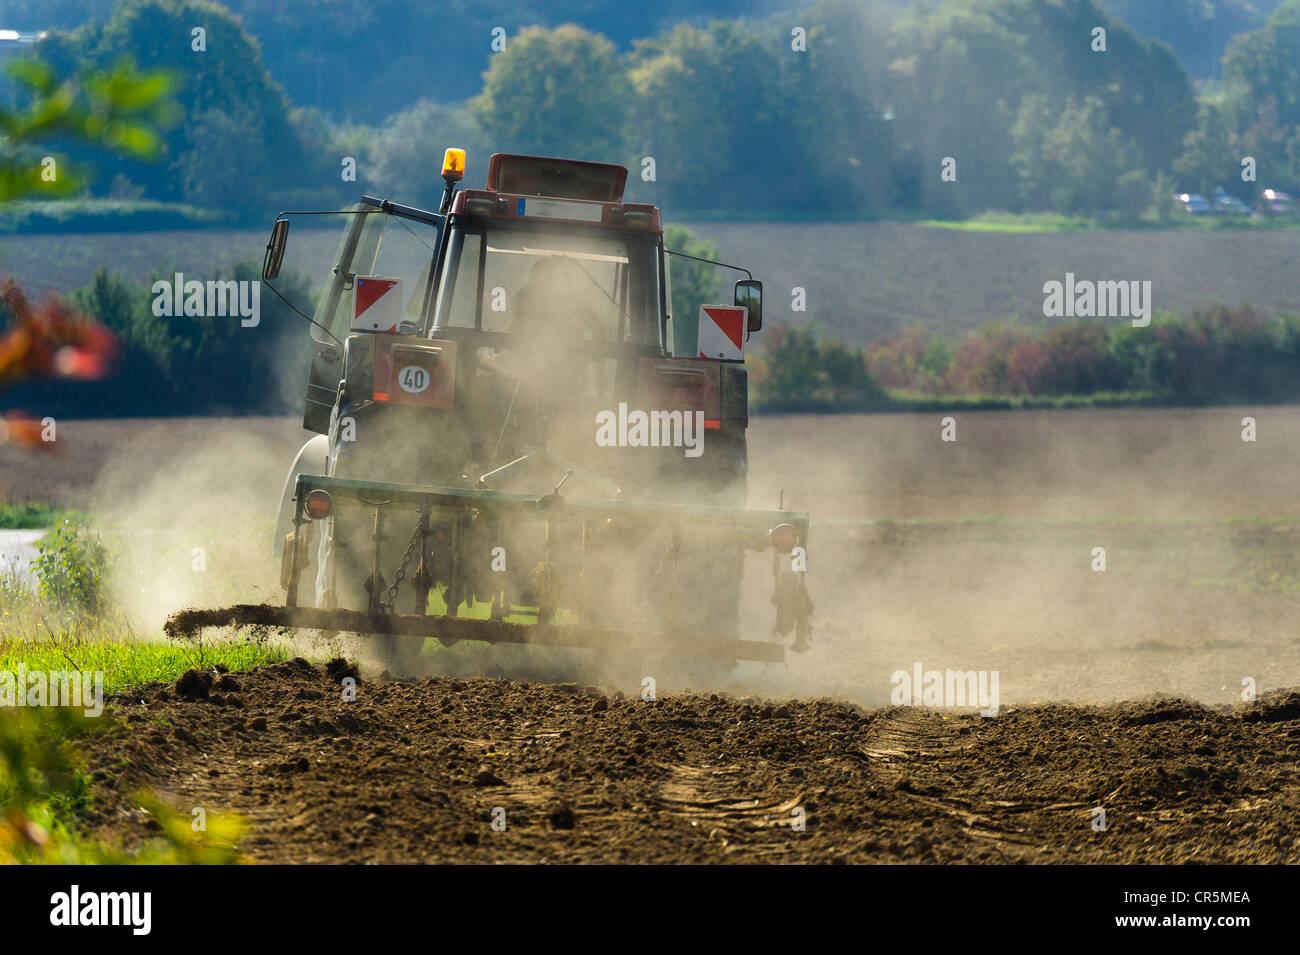 Farmer with a tractor during field work in autumn, Grevenbroich, North Rhine-Westphalia, Germany, Europe - Stock Image